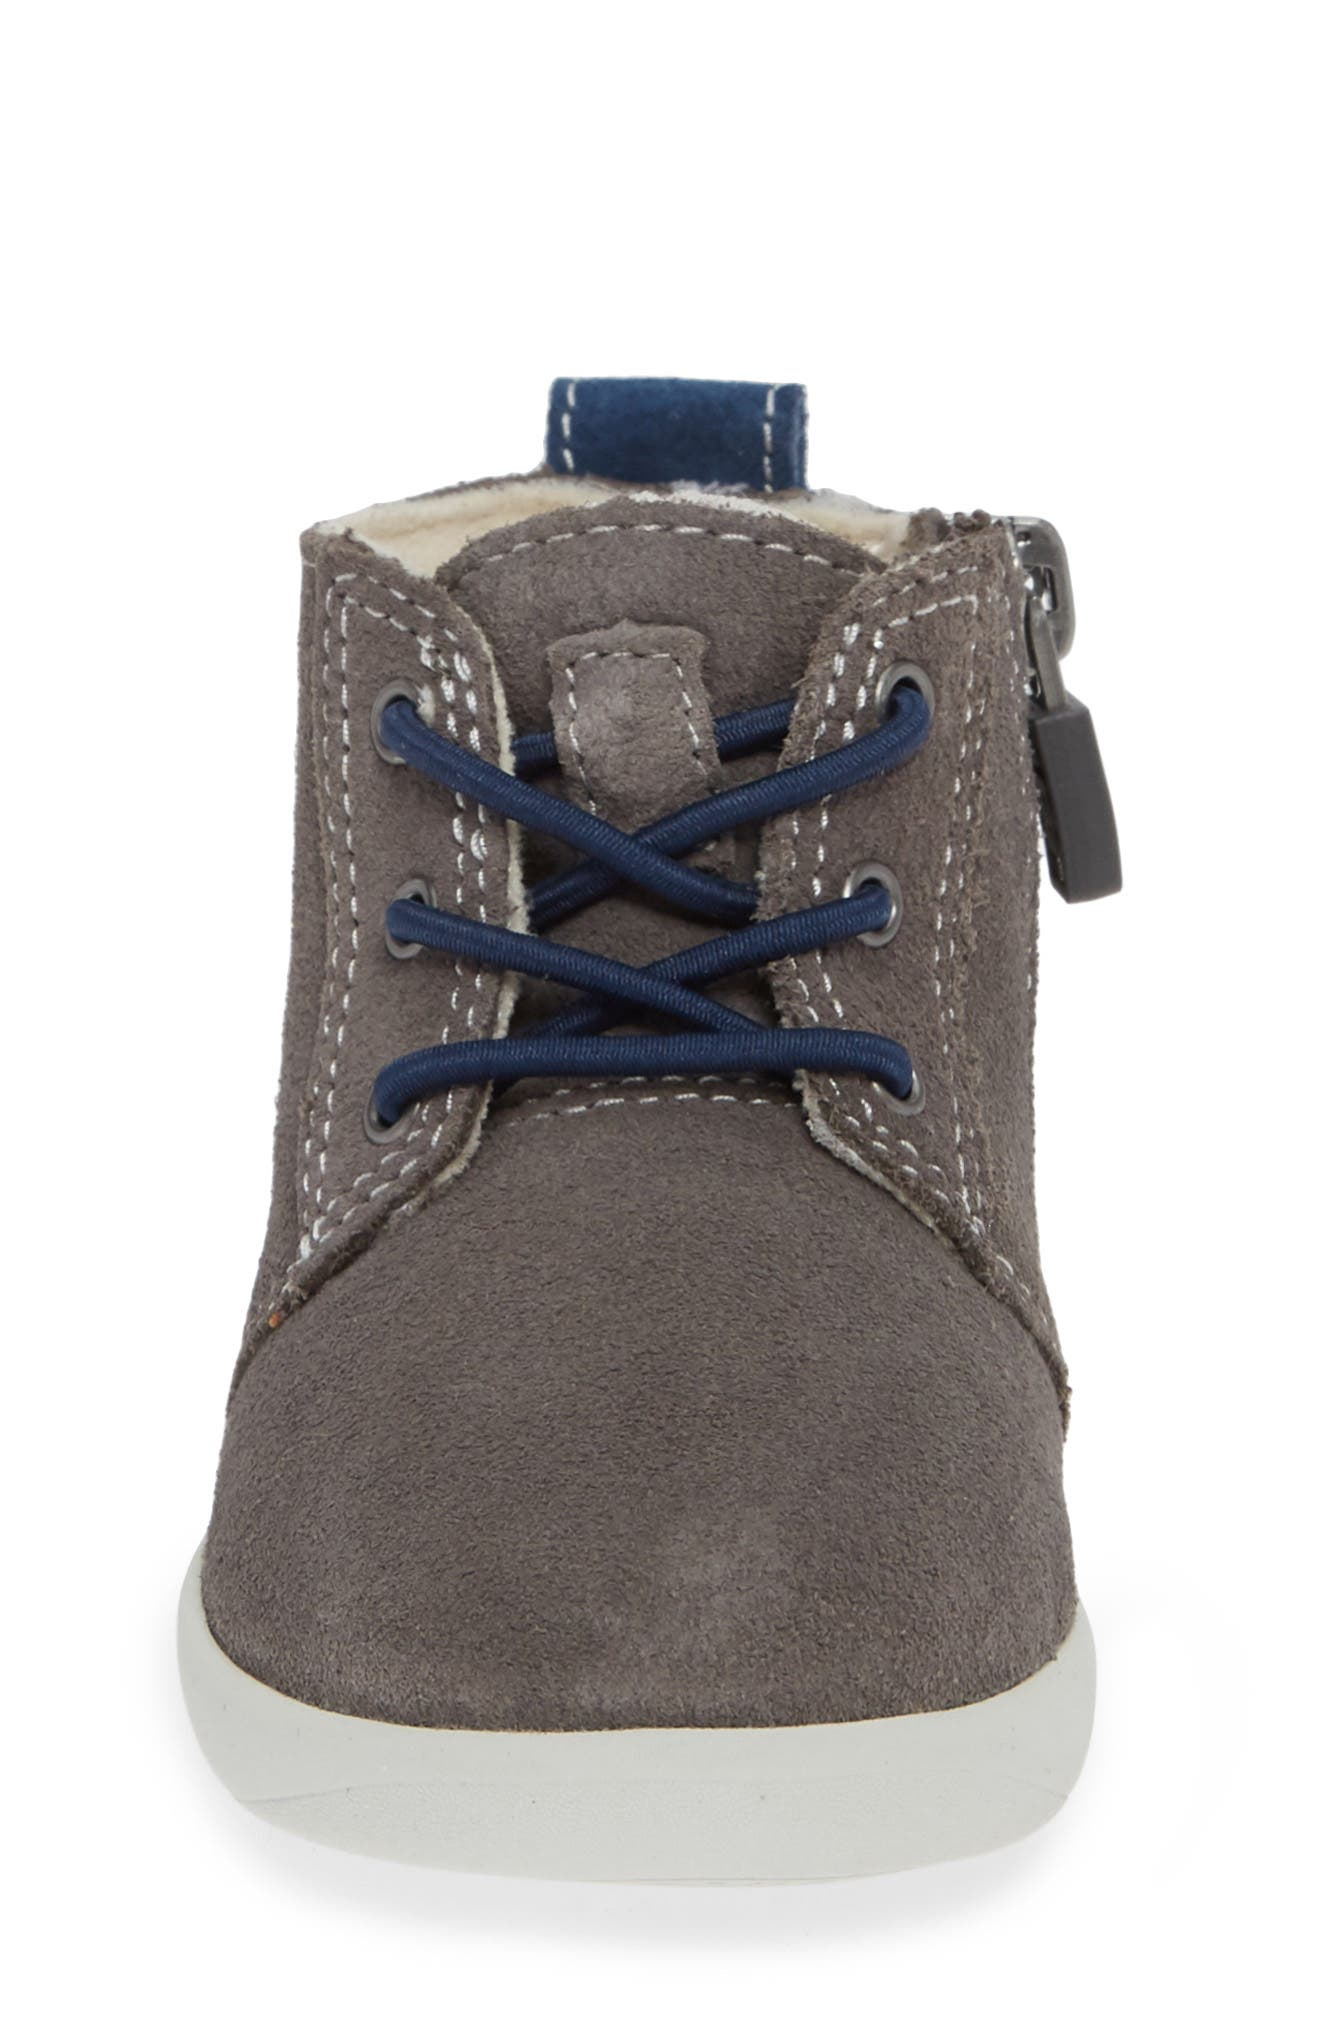 Kristjan Chukka Bootie Sneaker,                             Alternate thumbnail 5, color,                             Charcoal Grey